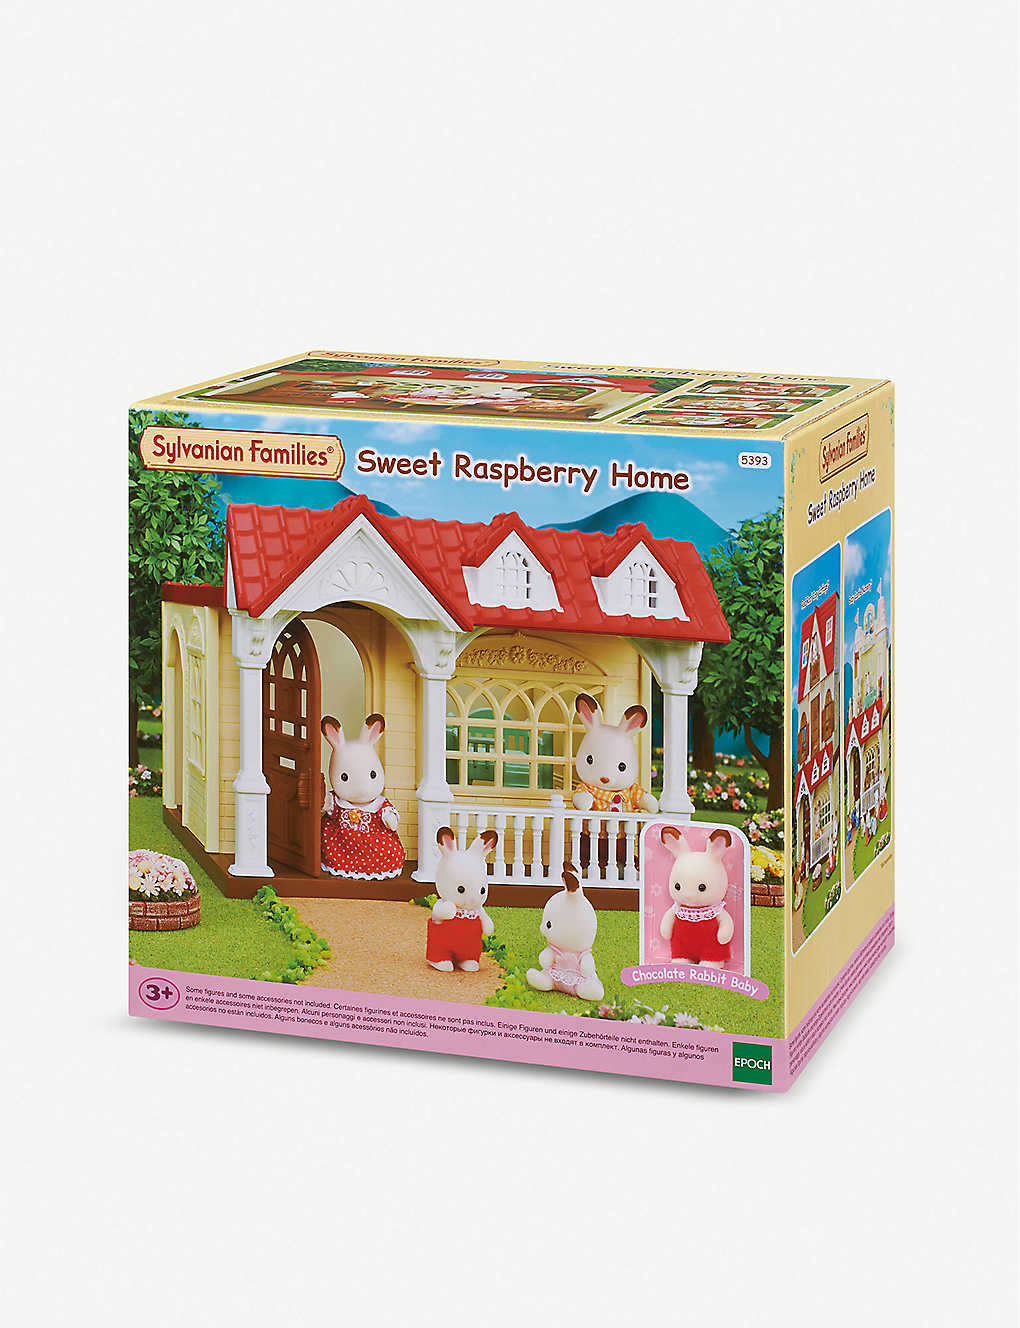 SYLVANIAN FAMILIES: Sweet Raspberry Home toy set